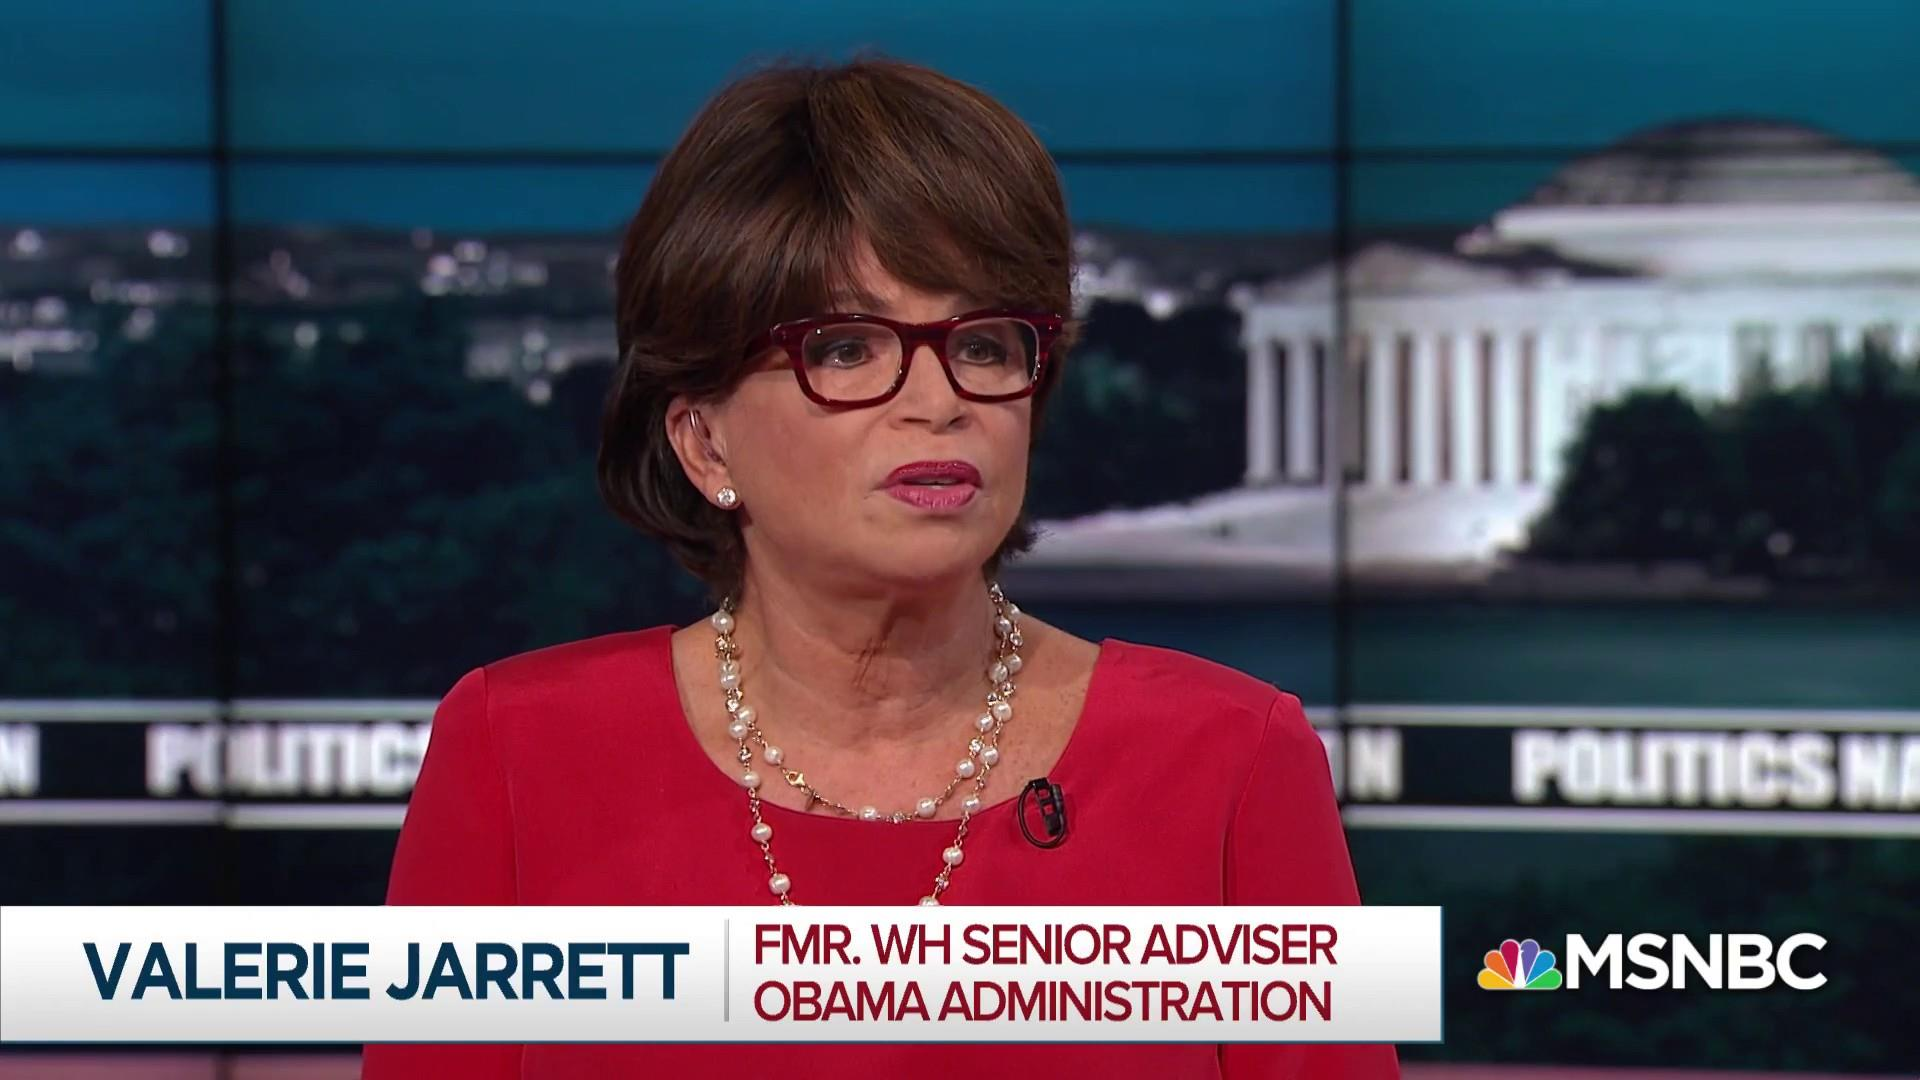 Valerie Jarrett: Candidates at their Strongest When They Build on [Obama] Legacy